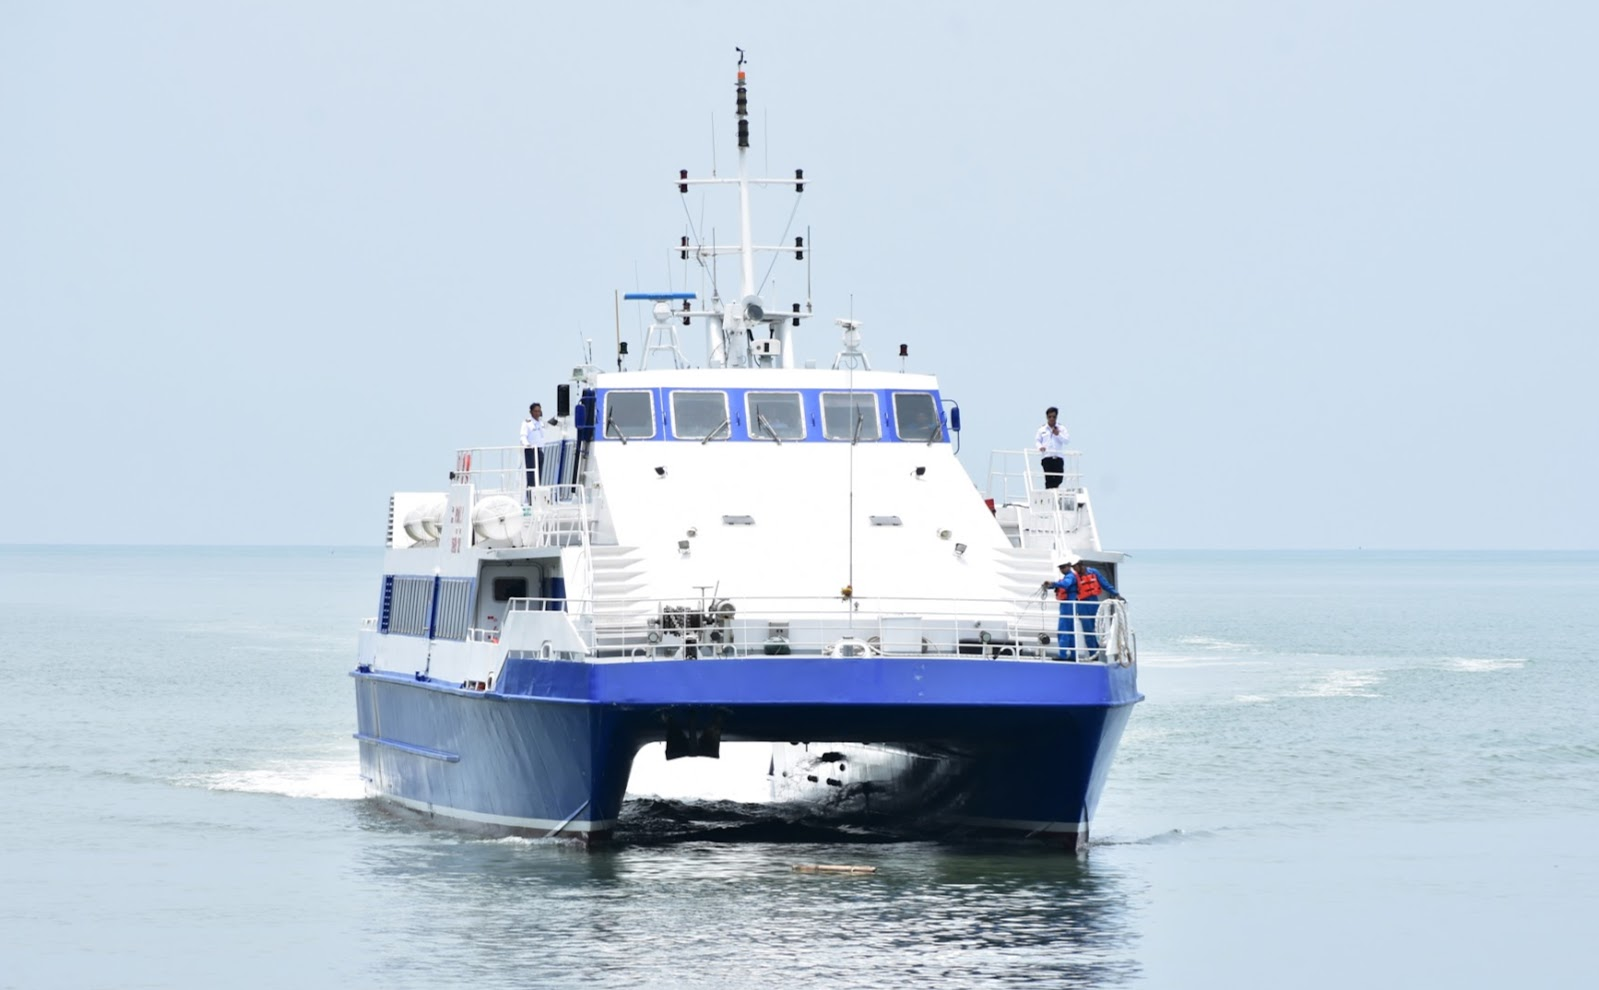 Travel from Hua Hin to Pattaya by Royal Passenger Catamaran in economy class